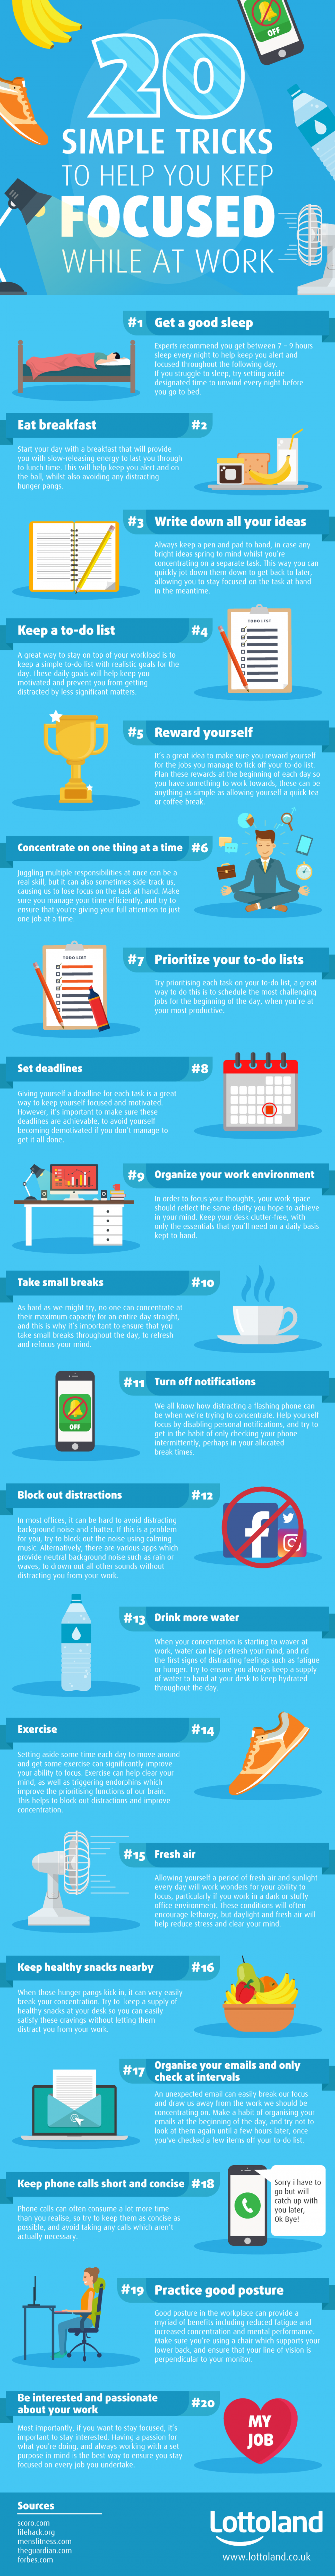 20 Simple Tricks to Help Keep You Focused at Work Infographic